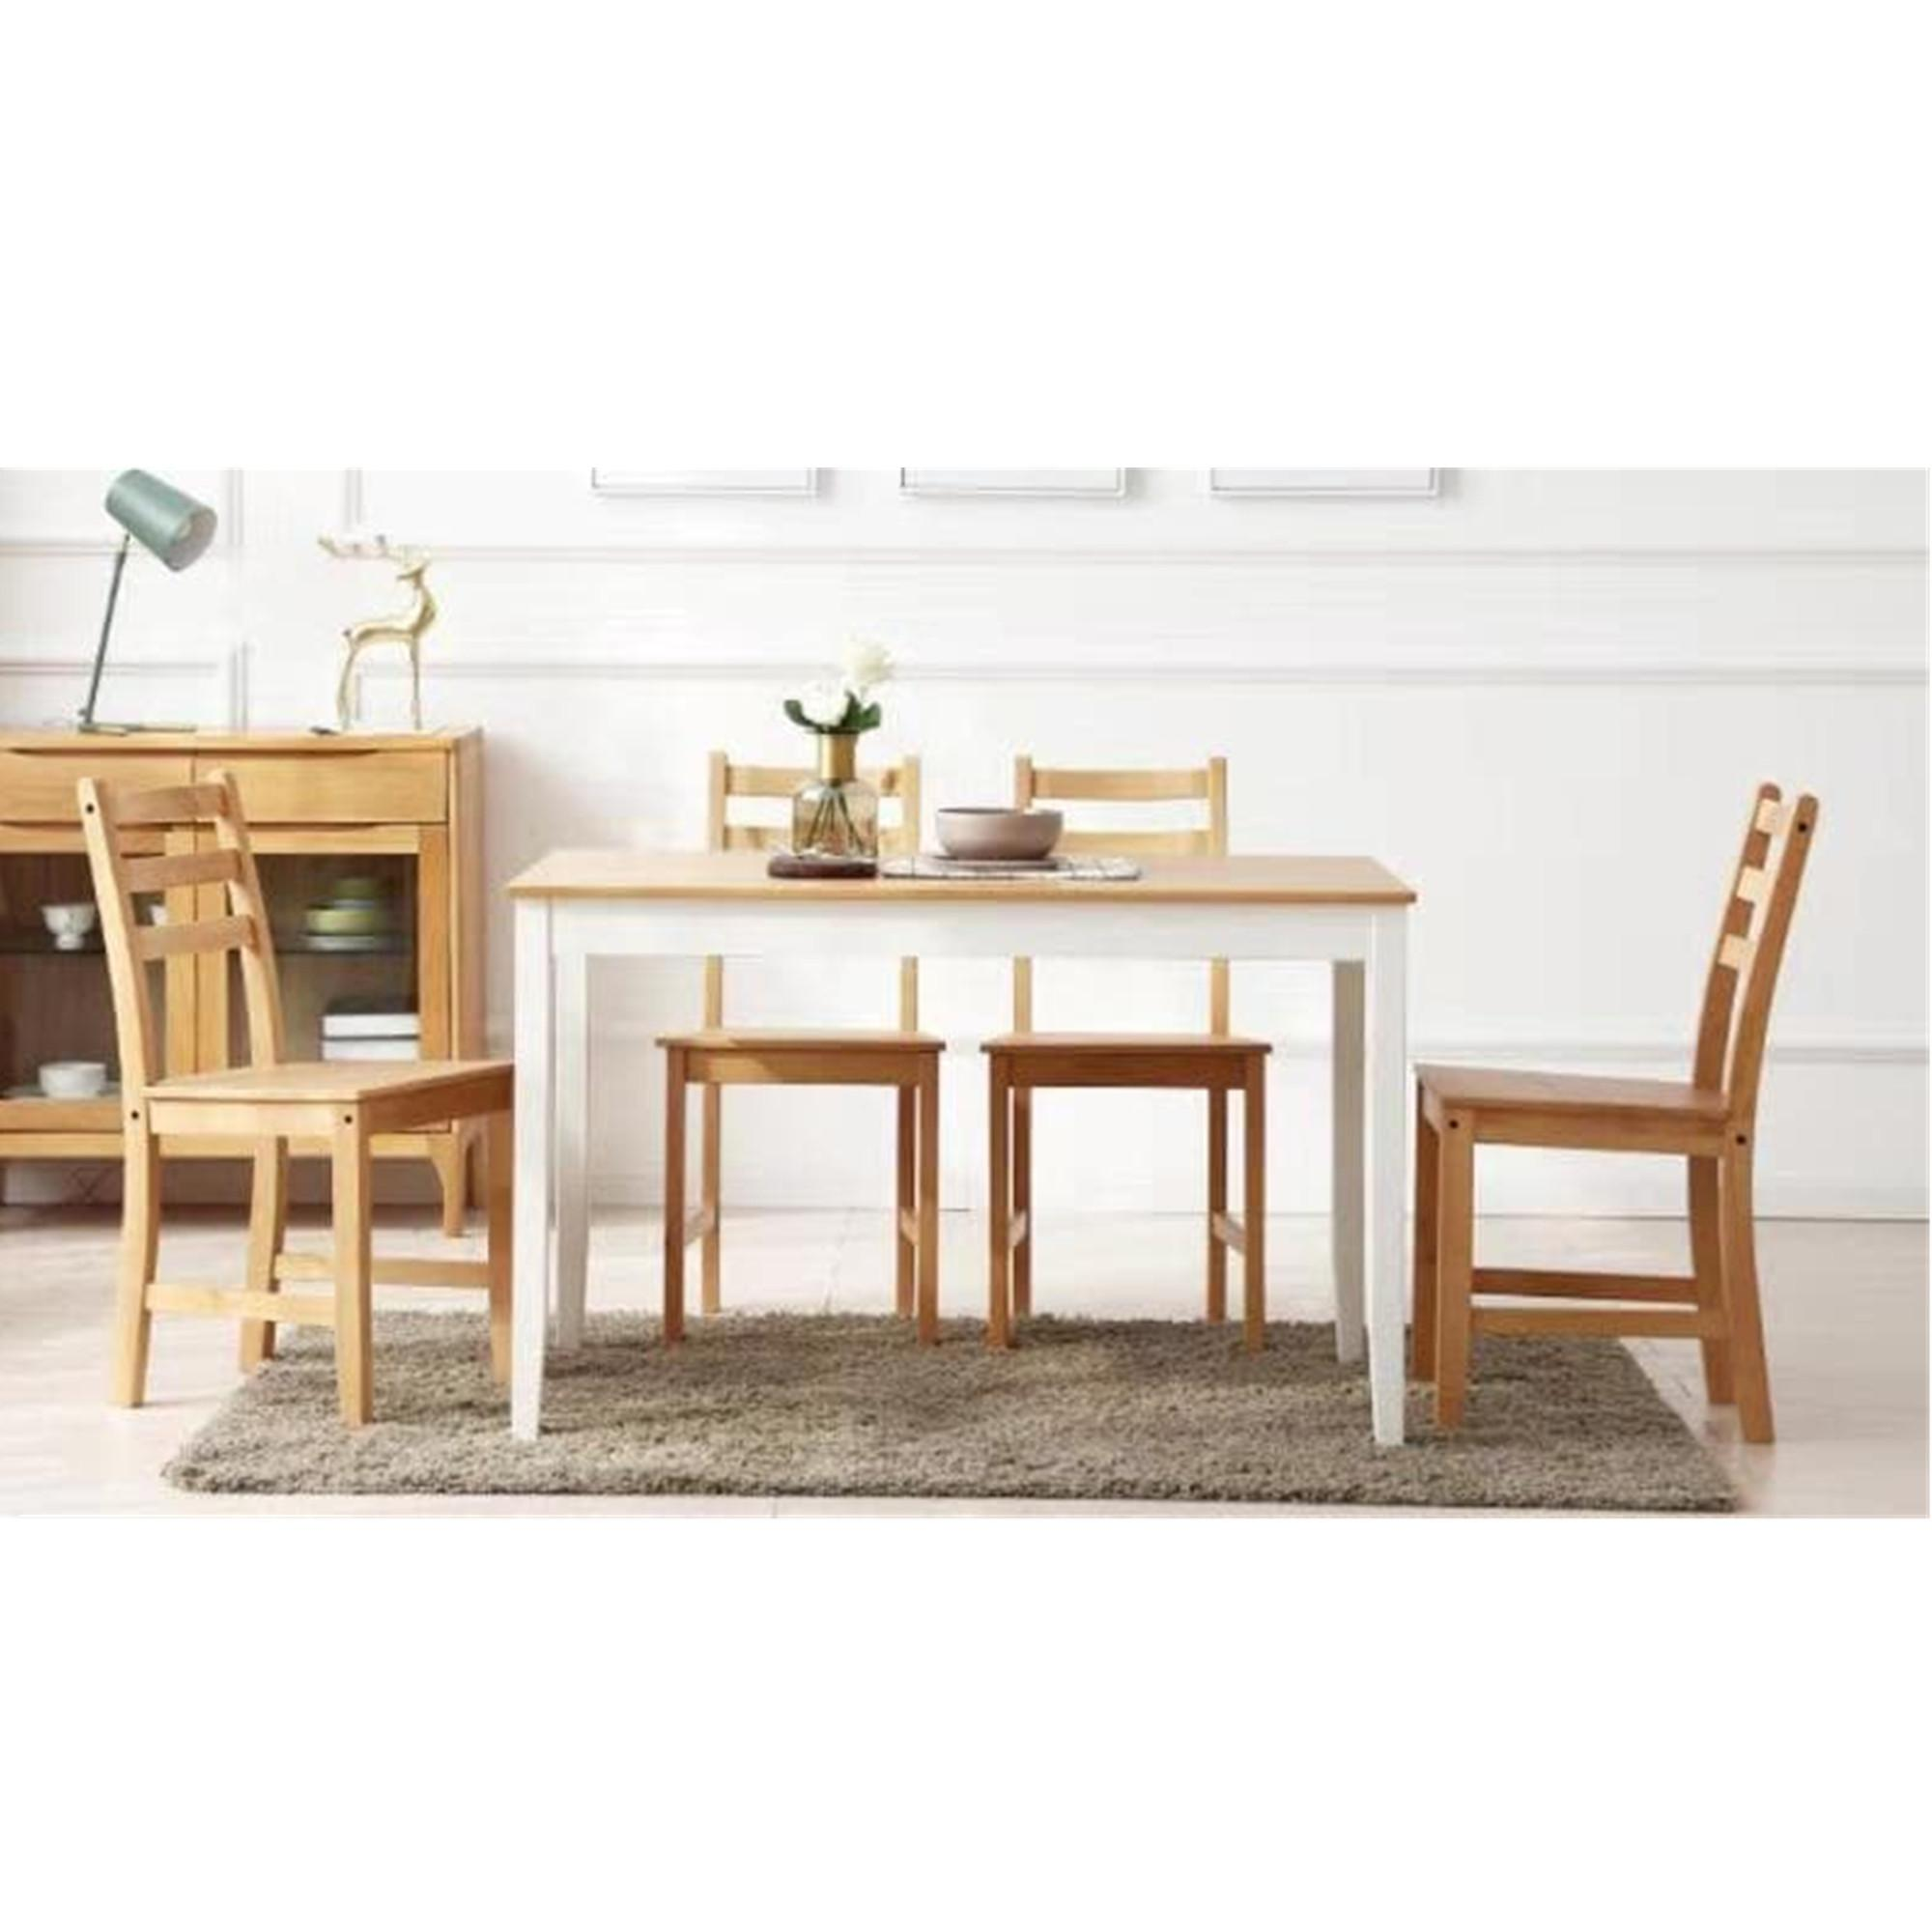 08e8508c0c1 Dining Set for sale - Dining Table   Chair Set prices